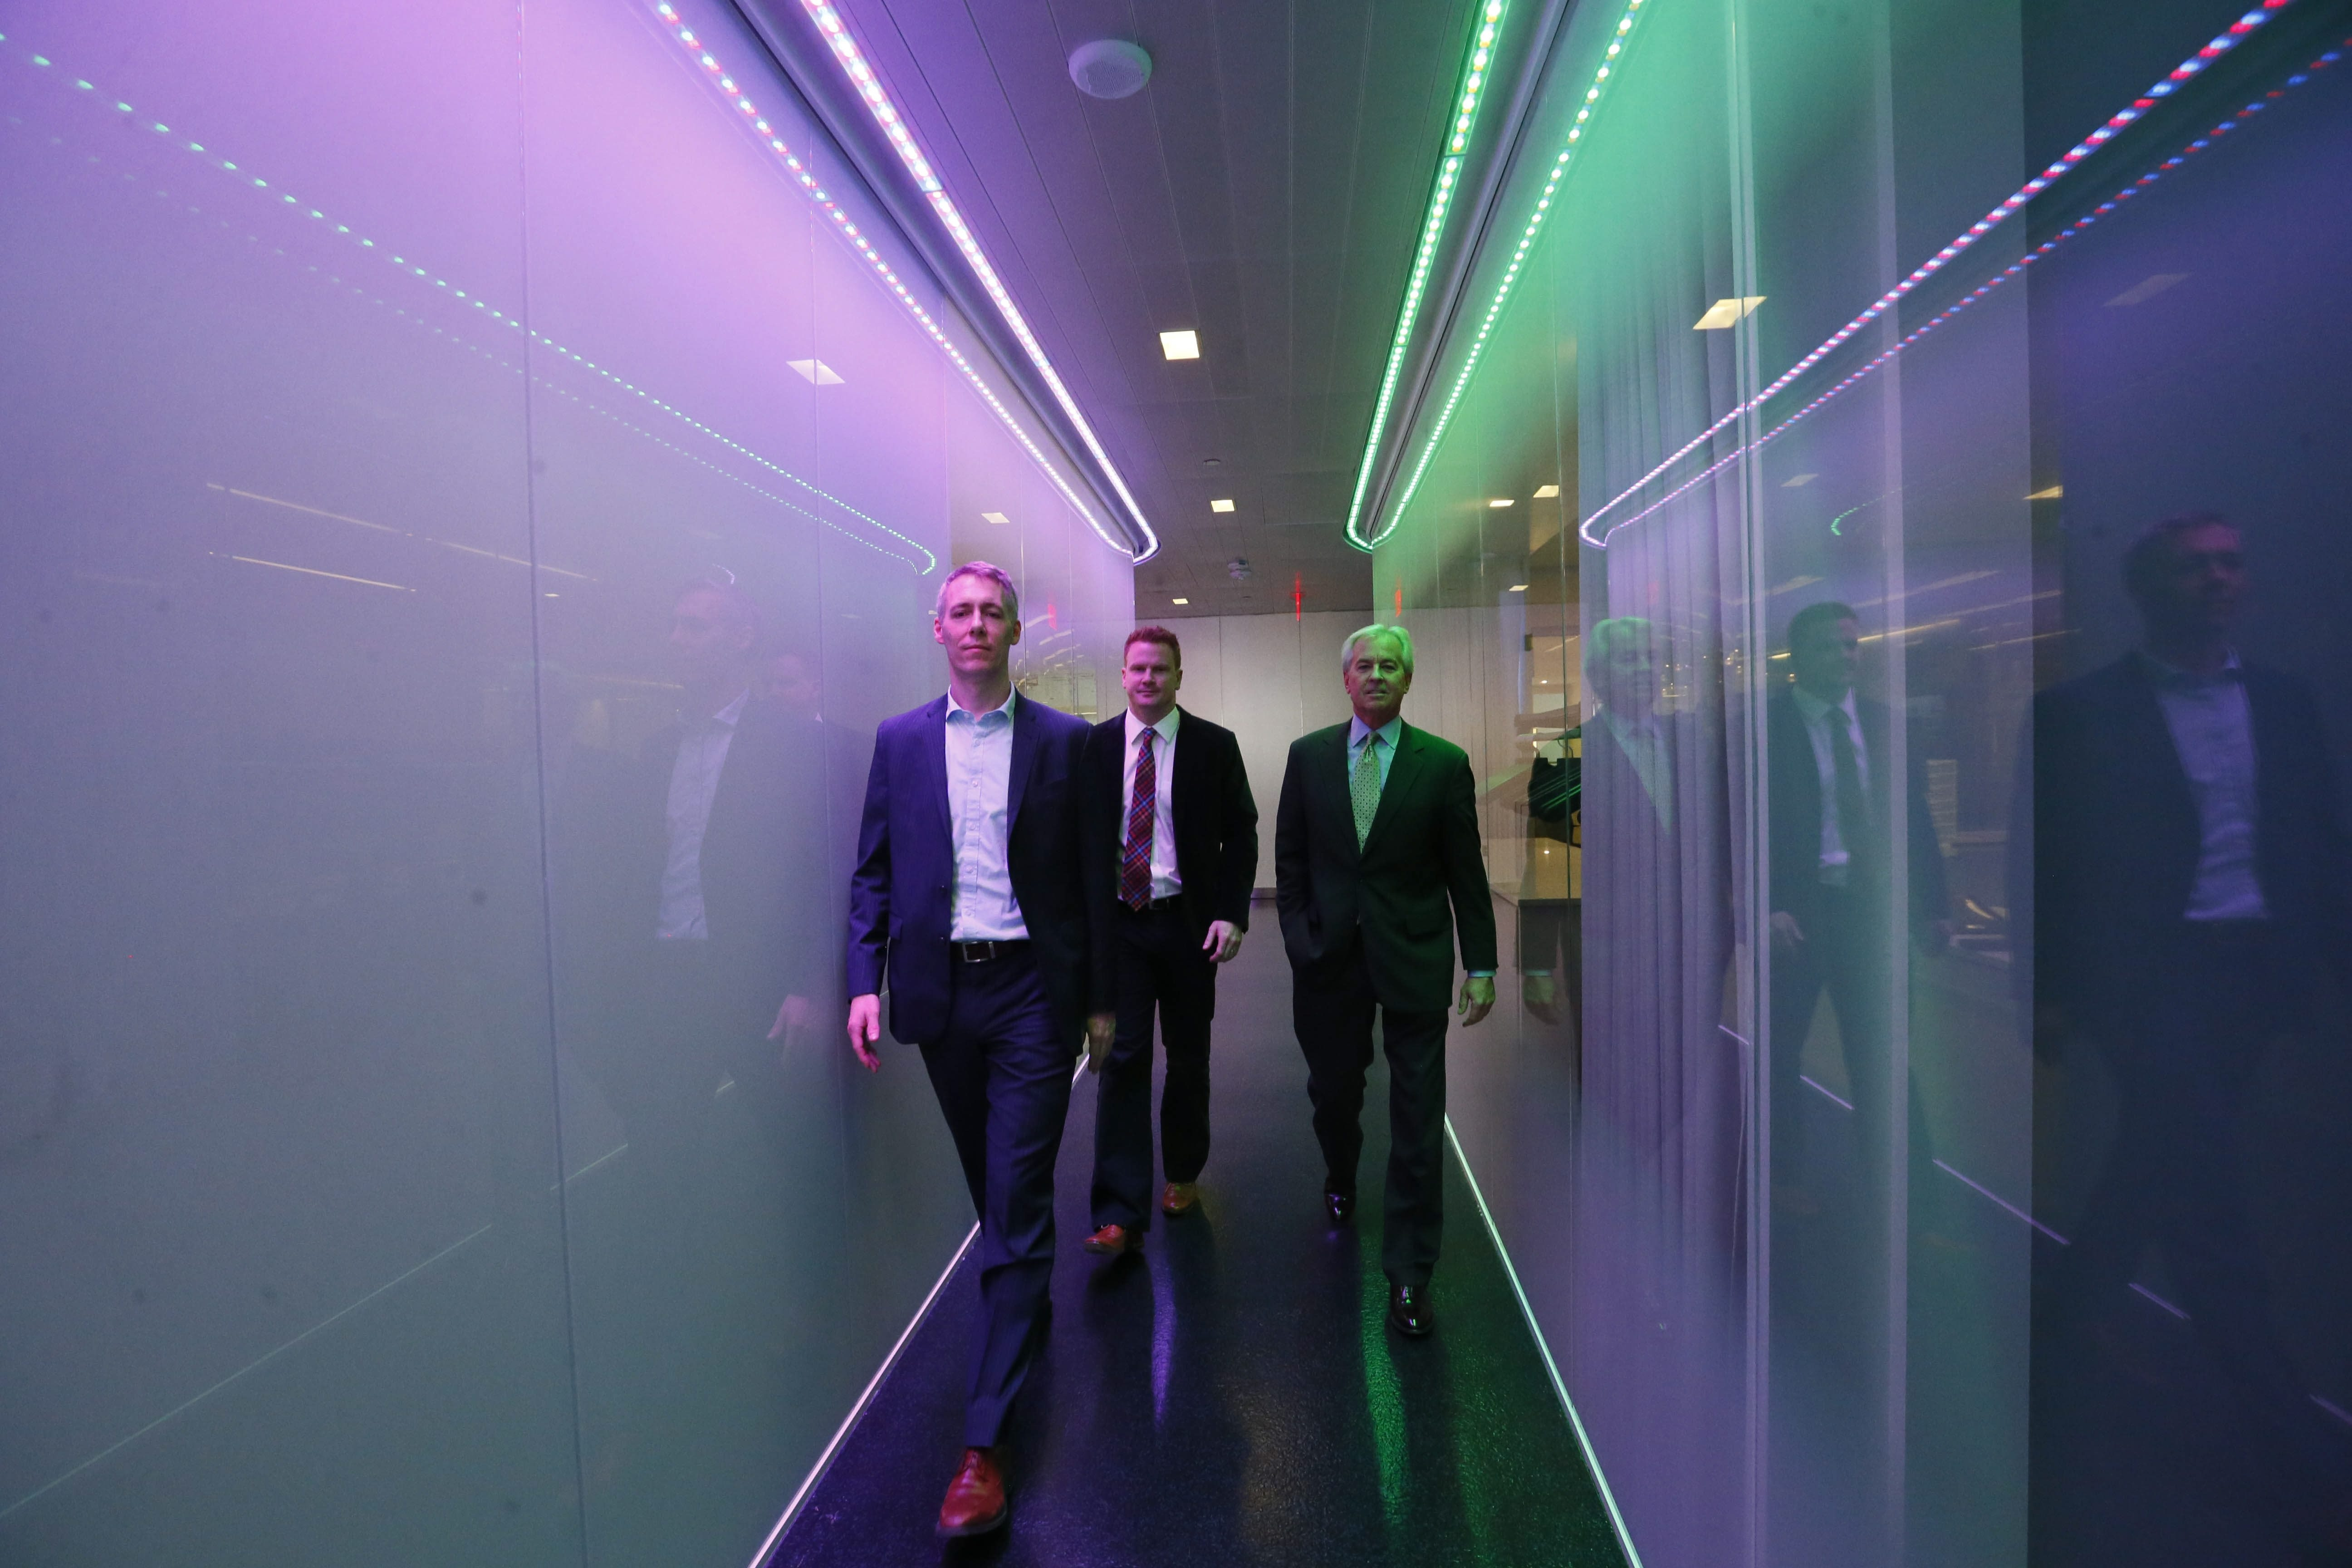 From left, Niall Wallace, chief innovation officer for Infonaut, Mike Springer, director of operations and entrepreneurship at the Jacobs Institute, and Infonaut President and CEO Thomas Quinn at the Jacobs Institute.  Infonaut uses real-time surveillance technology to prevent the spread of infections and improve patient safety in hospitals.